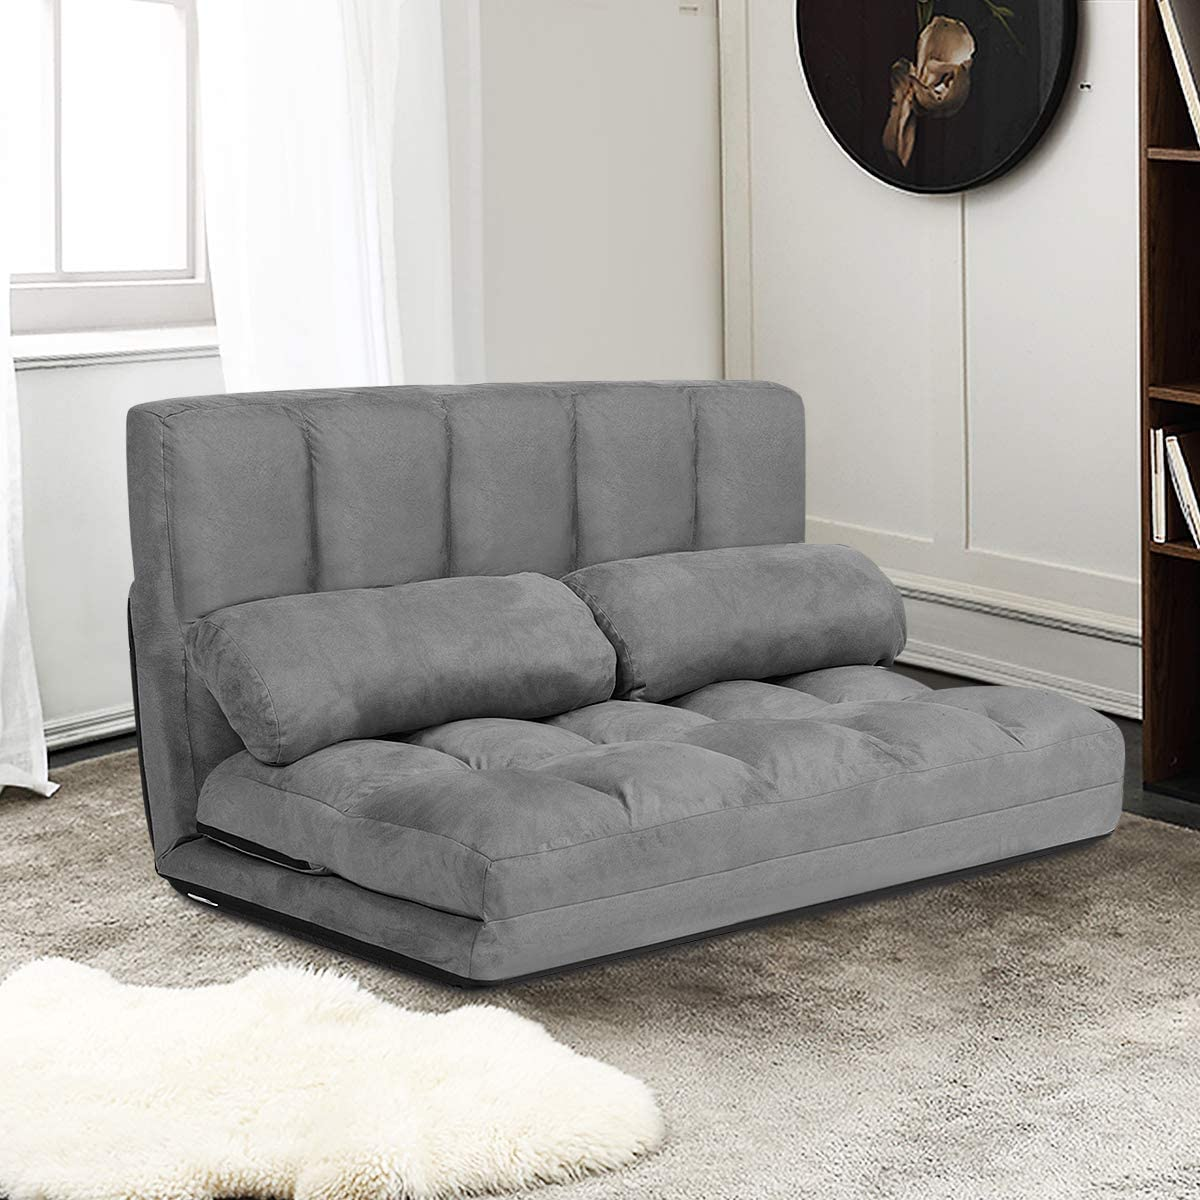 Giantex Adjustable Floor Sofa, Foldable Lazy Sofa Sleeper Bed 6-Position Adjustable, Suede Cloth Cover Detachable, Floor Gaming Sofa Couch with 2 Pillows for Bedroom Living Room Balcony Gray